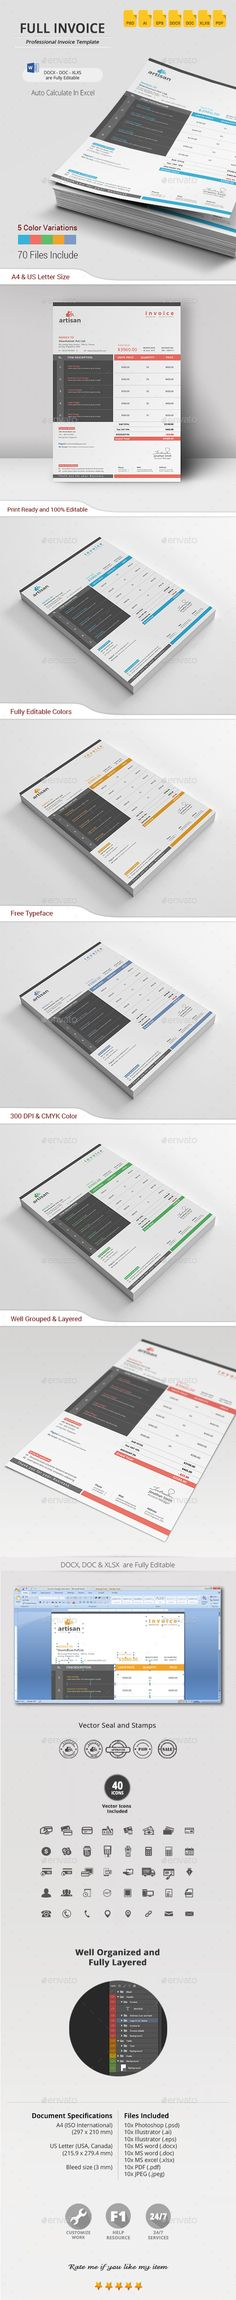 Proposal Proposals, Stationery and Templates - Sample Contract Proposal Template